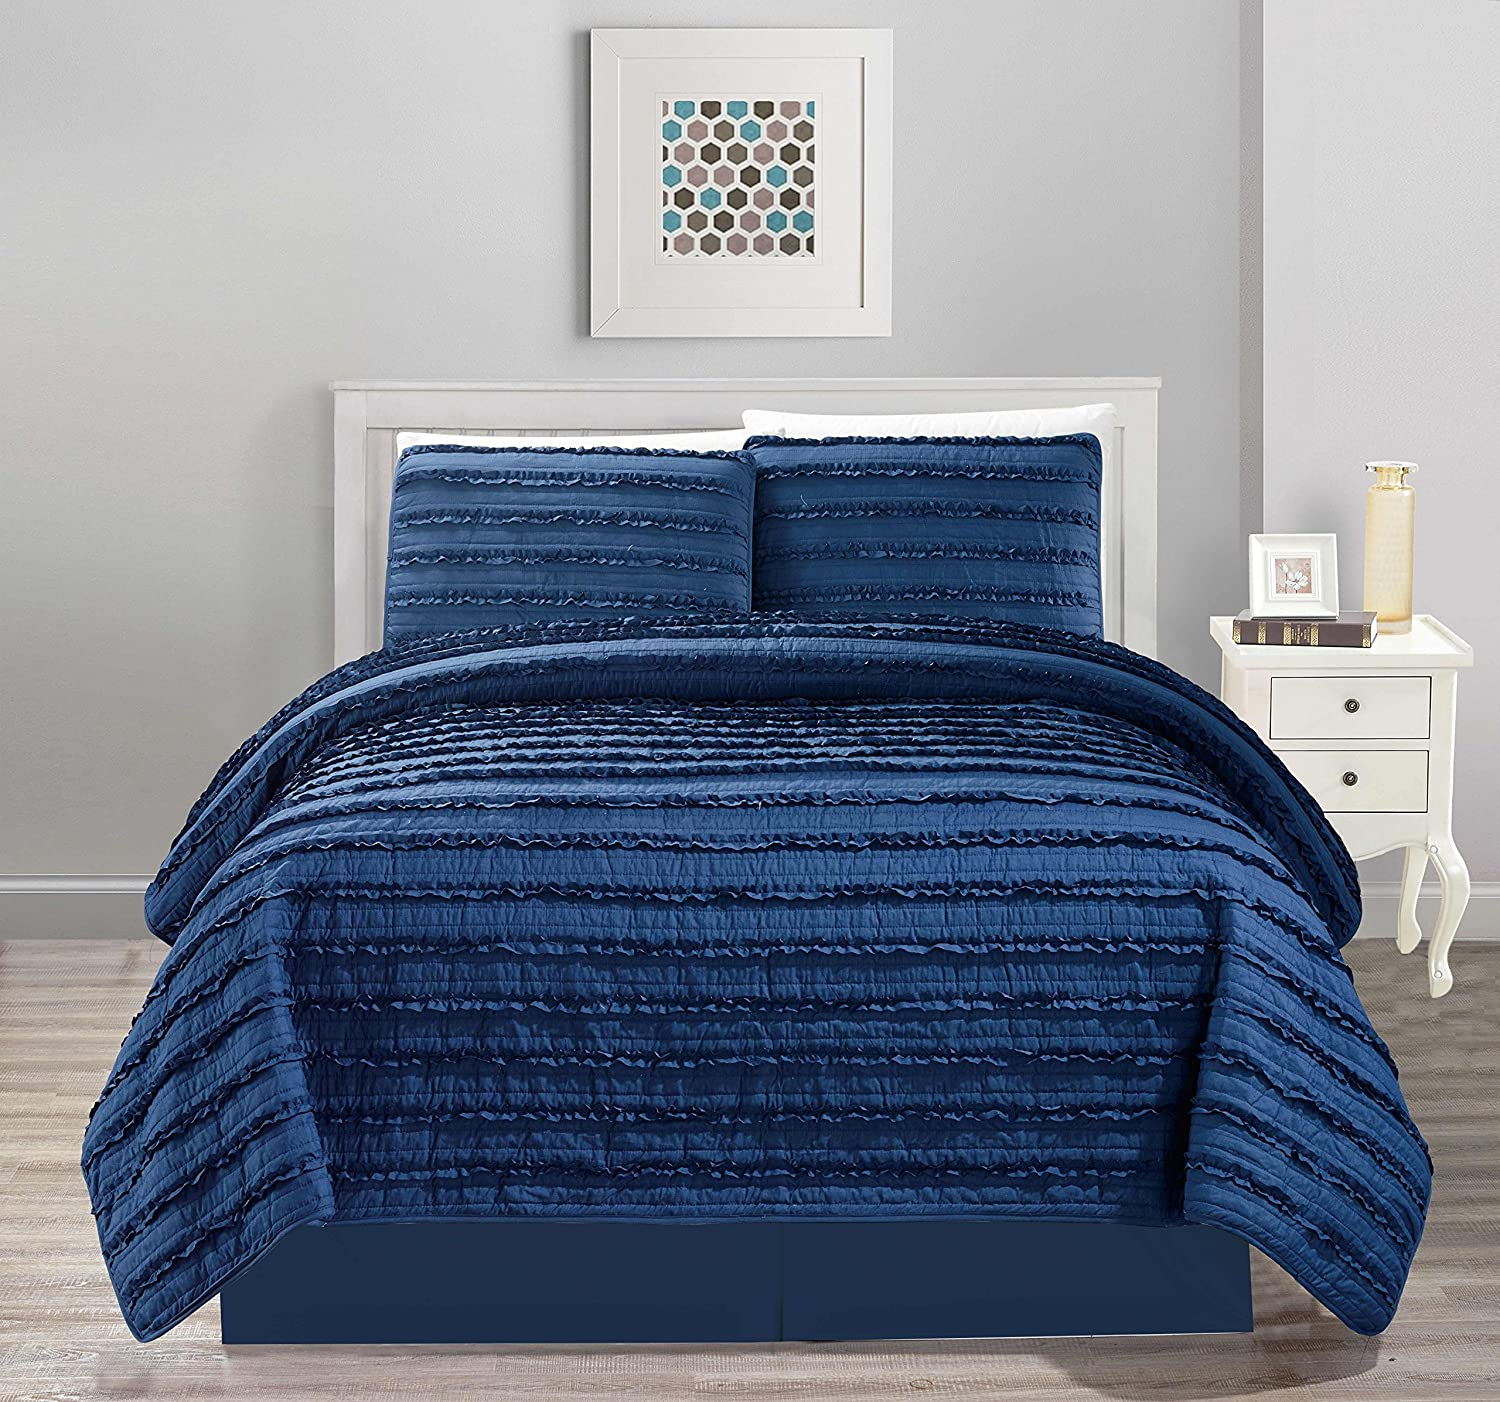 Blue bedspreads and comforters - 4pc Pleated Ruffle Bedspread Quilt Set With Bedskirt King Size Navy Blue